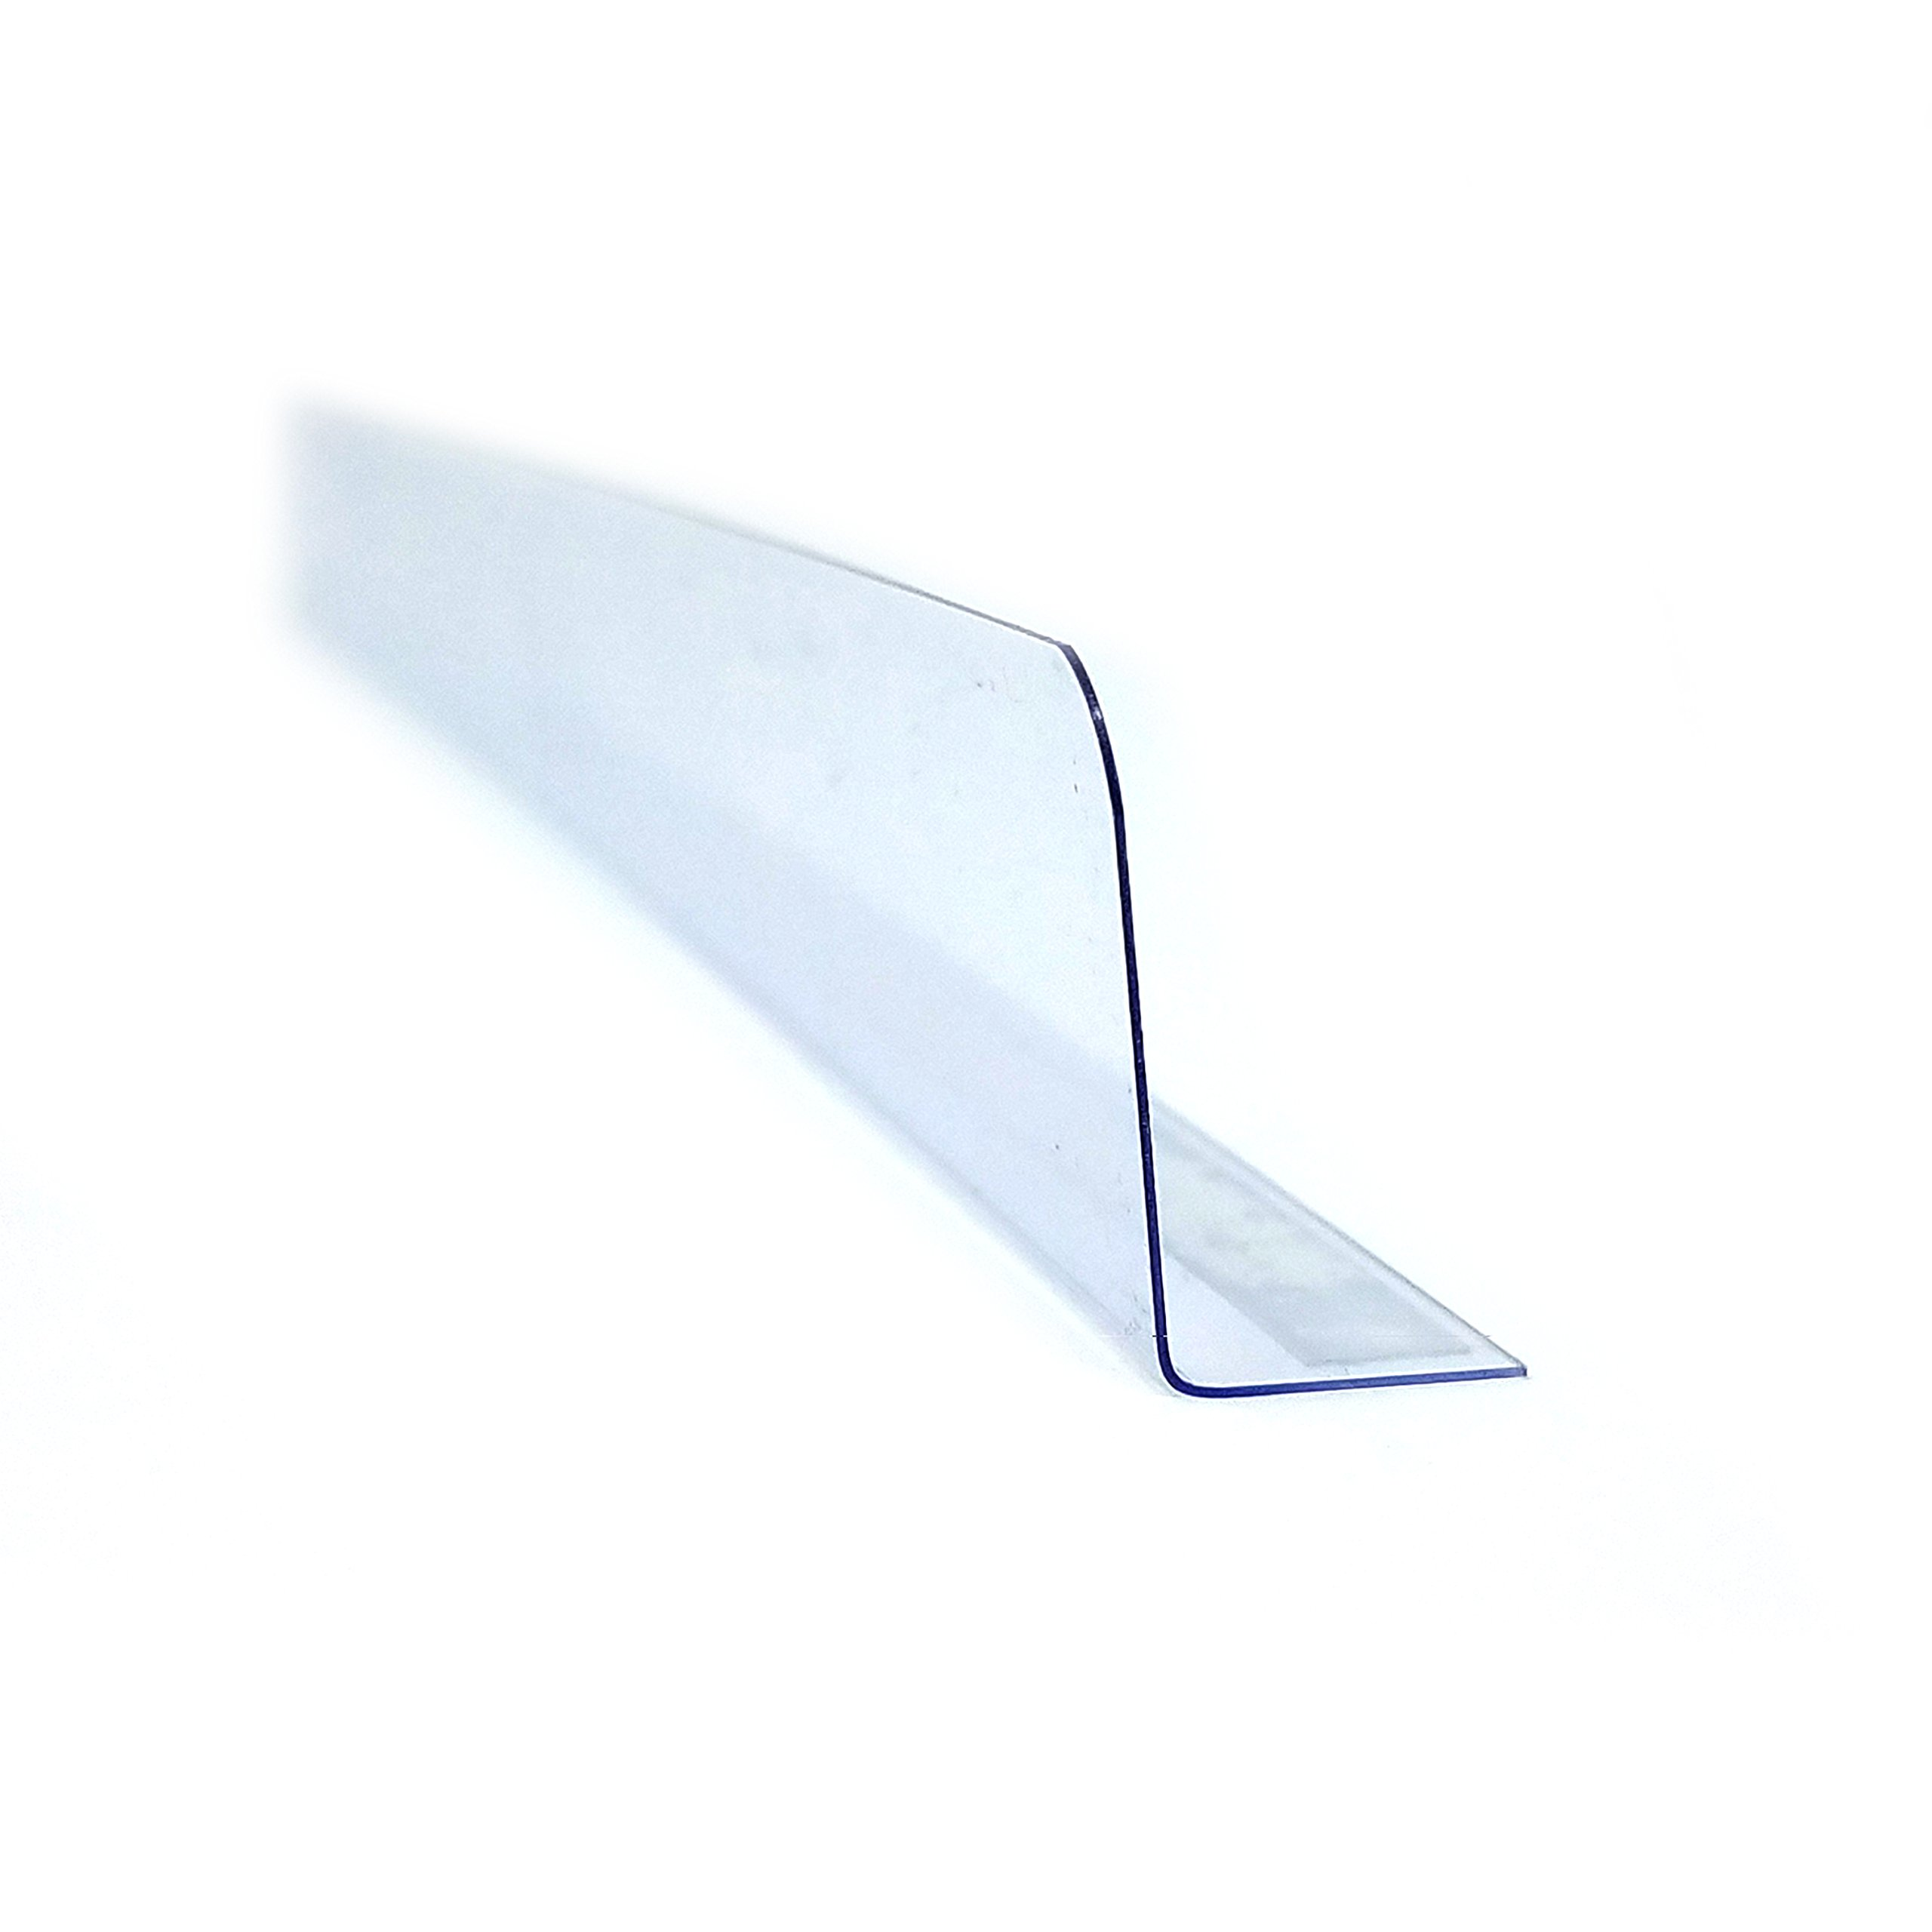 Stick On Gondola, Wood or Glass Shelf Dividers with Self Adhesive Tape - 1'' H X 12'' L - 50 Pack